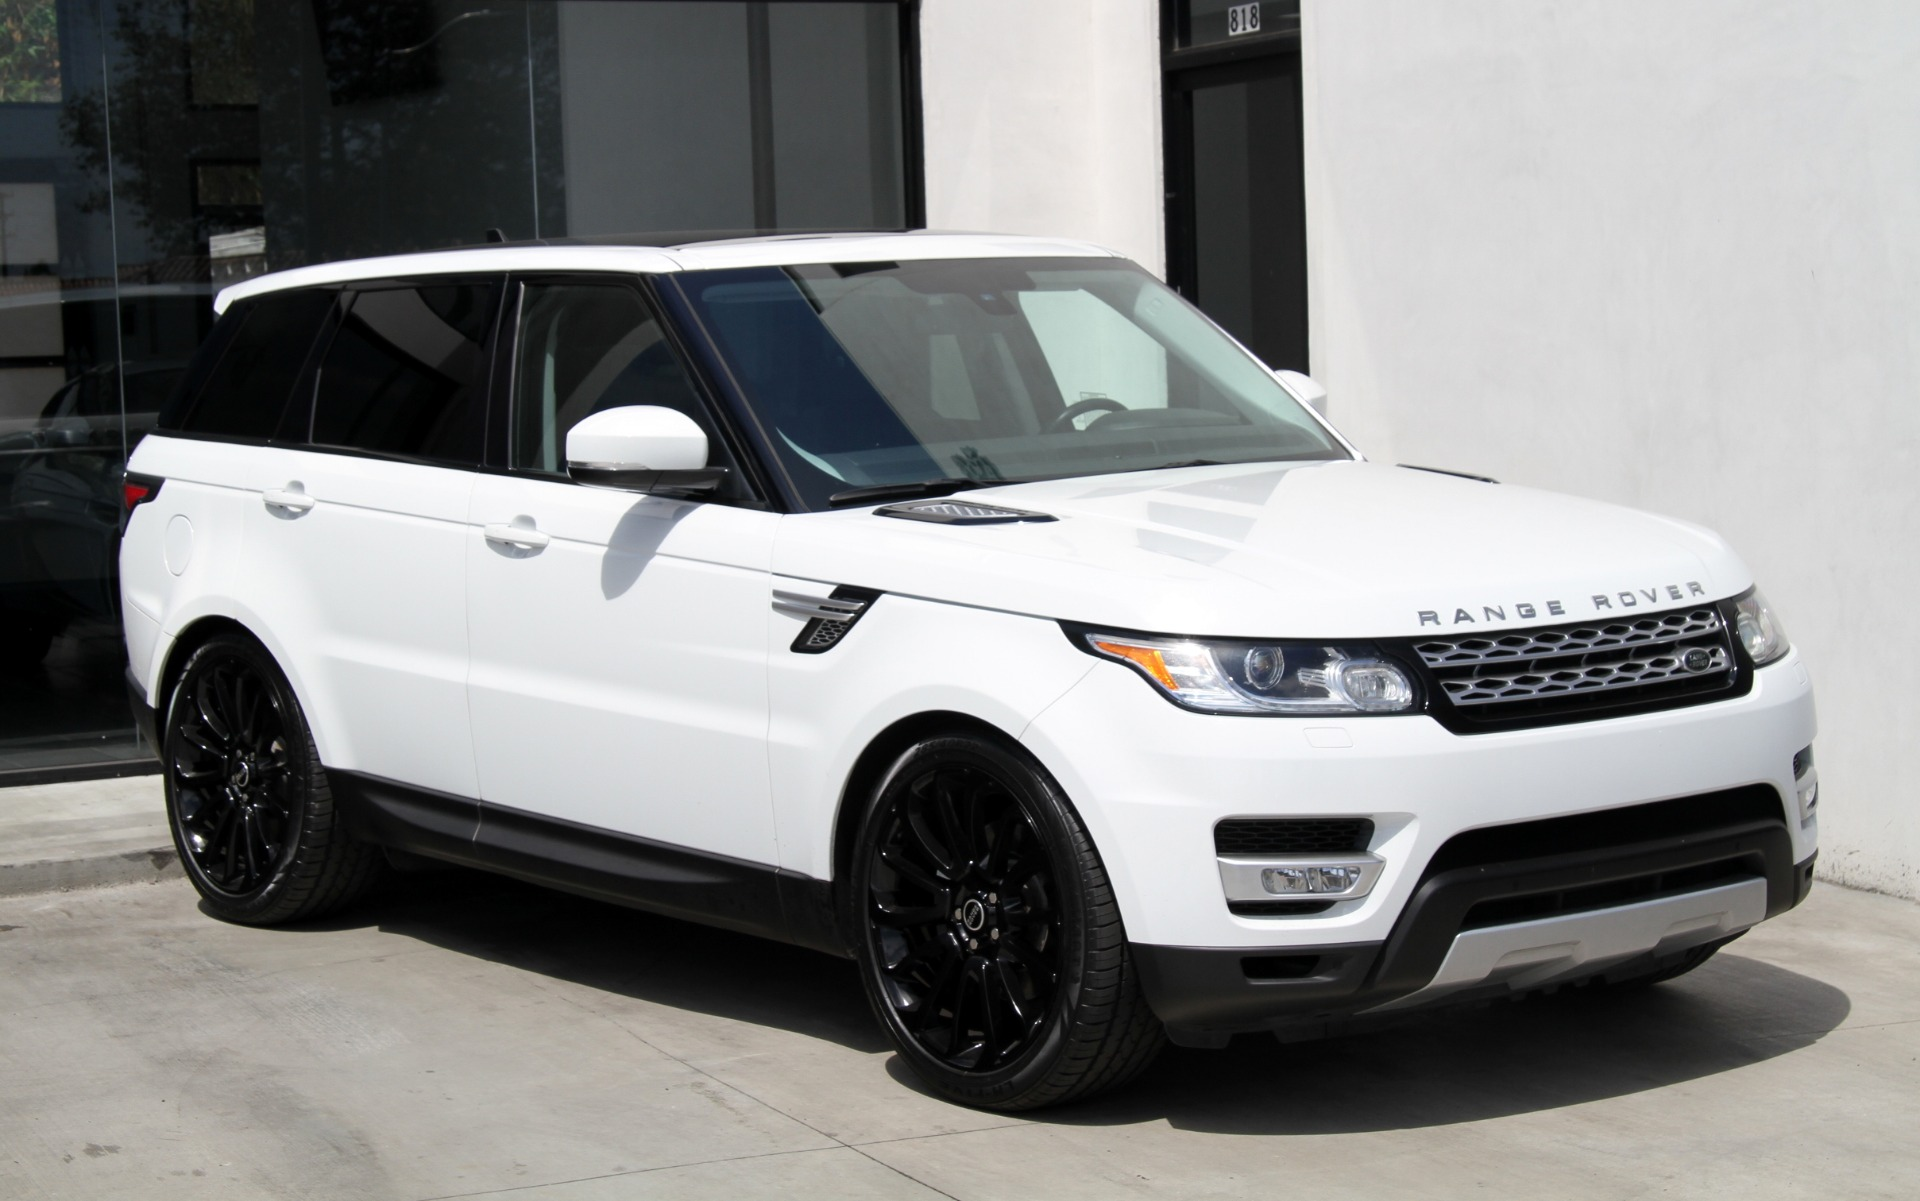 Land Rover For Sale Near Me >> 2015 Land Rover Range Rover Sport HSE Stock # 6224 for ...